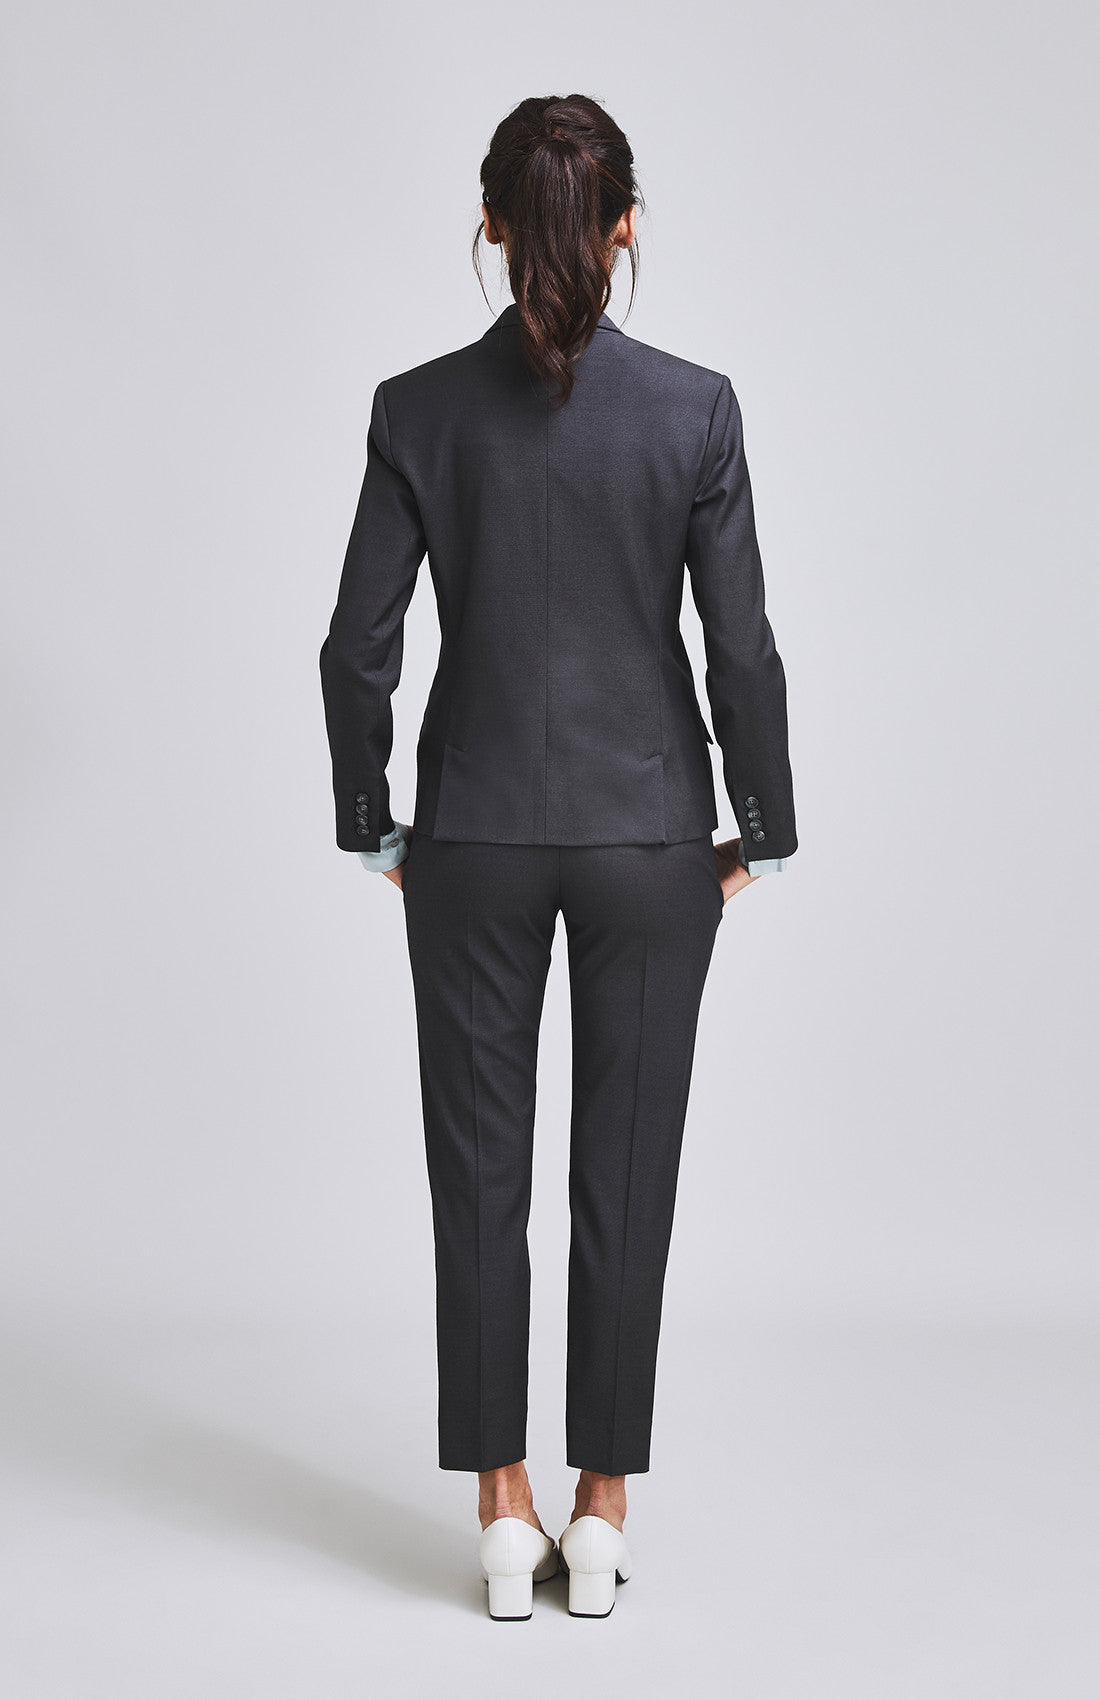 Women's luxury Savile Row style tailored suit jacket for the office charcoal grey